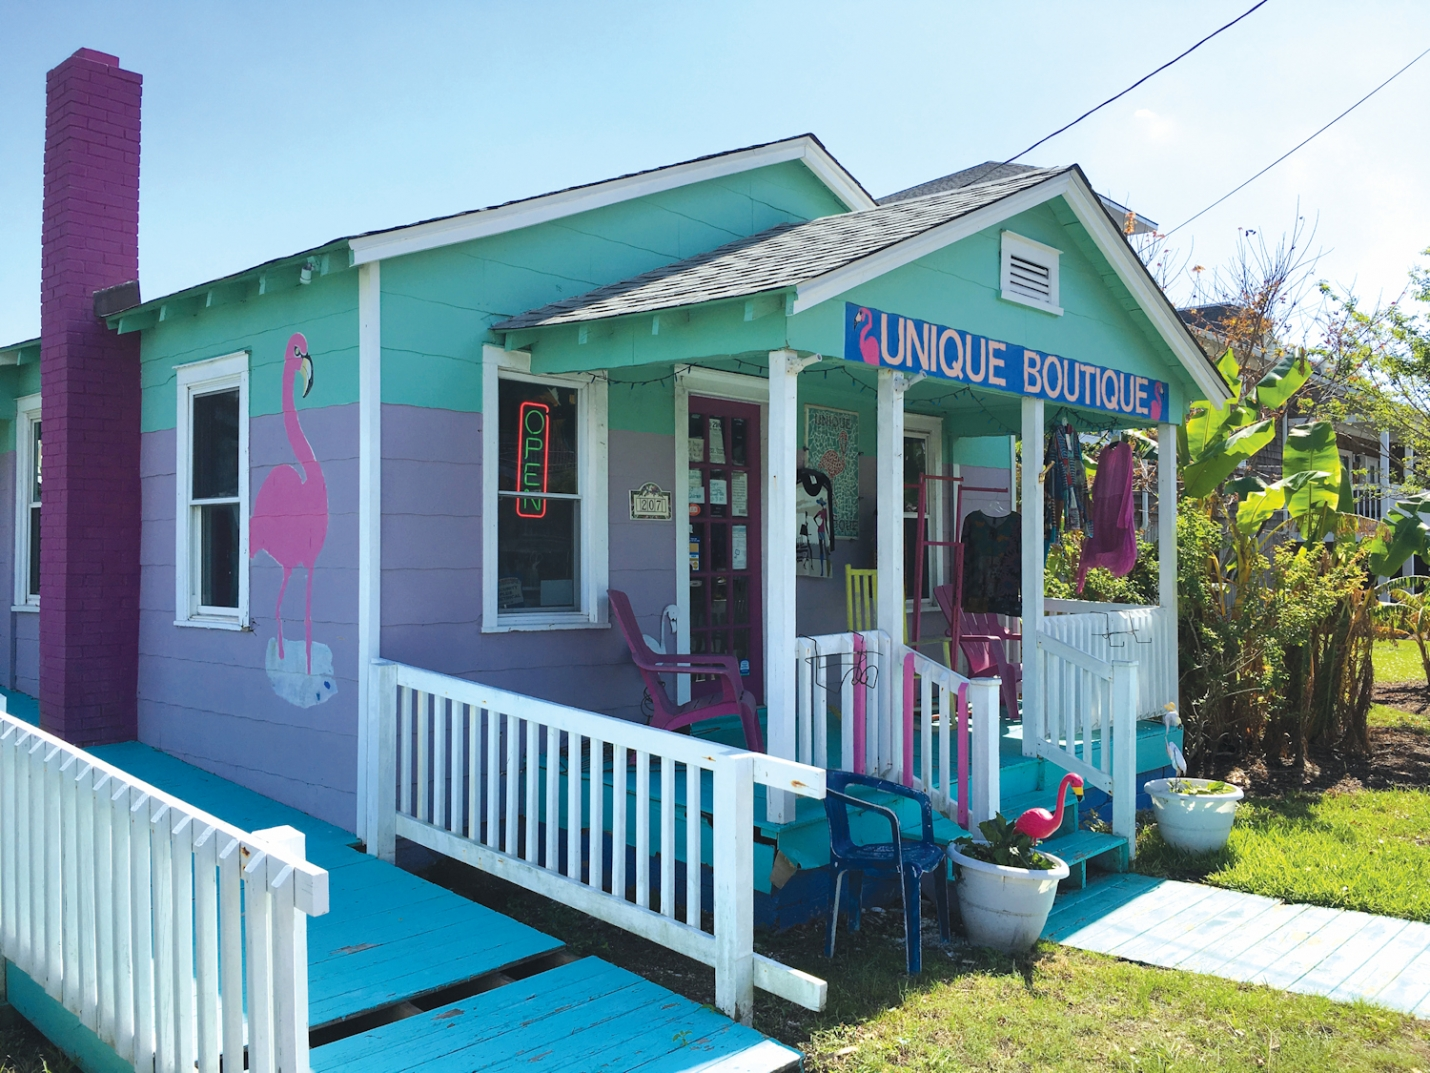 The Unique Boutique is located in Carolina Beach at 205 South Lake Park Boulevard in Carolina Beach.  You can find out more about the  Unique Boutique on their Facebook page! You can reach the Unique Boutique with any questions or inquiries you may have by calling (910) 458-4360.